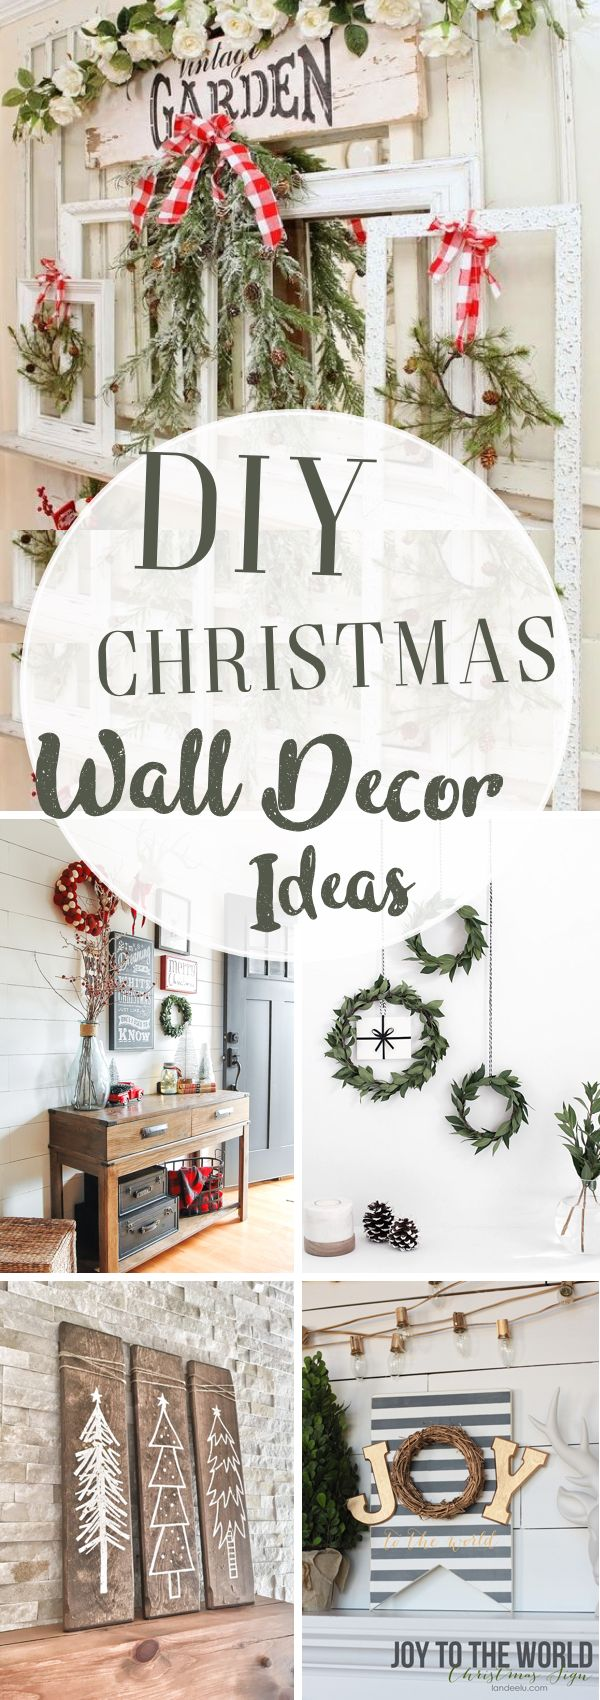 30 DIY Christmas Wall Decor Ideas Adding Holiday Cheers to Your ...